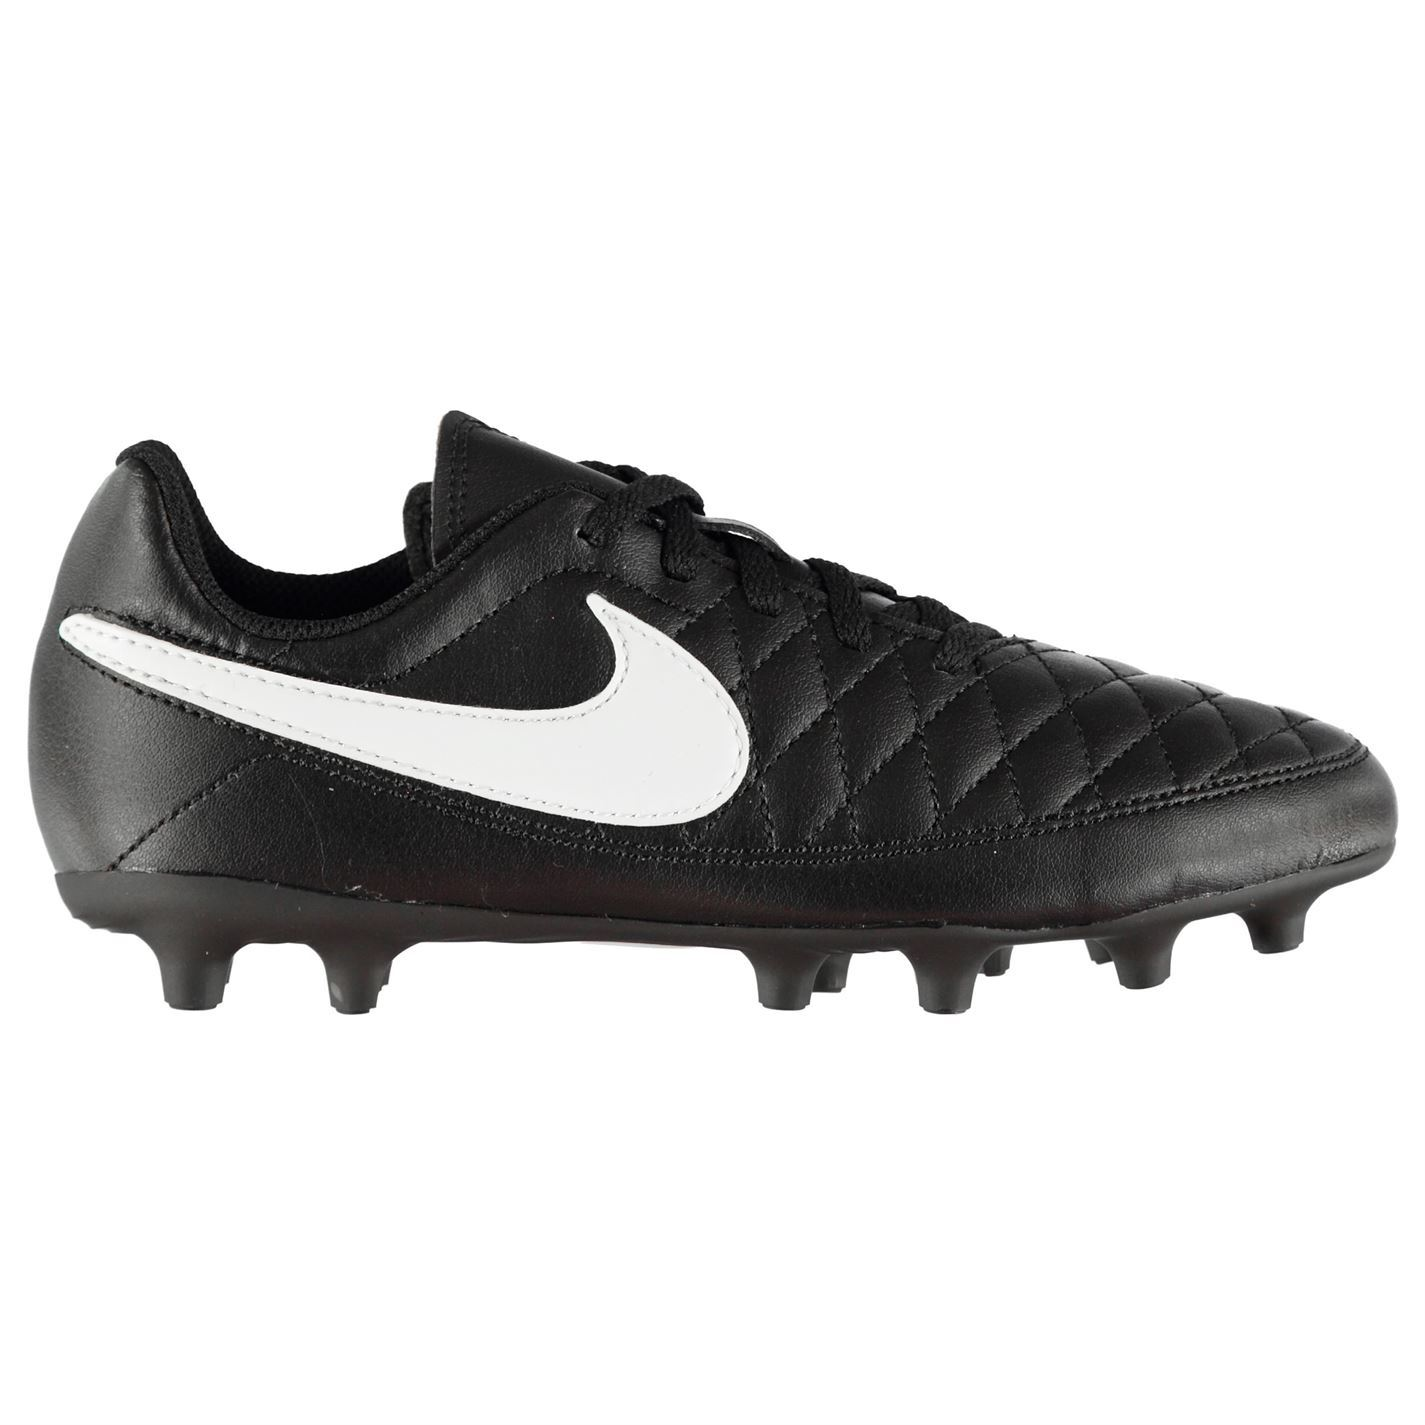 Nike-majestry-FG-Firm-Ground-Chaussures-De-Football-Enfants-Football-Chaussures-Crampons miniature 9